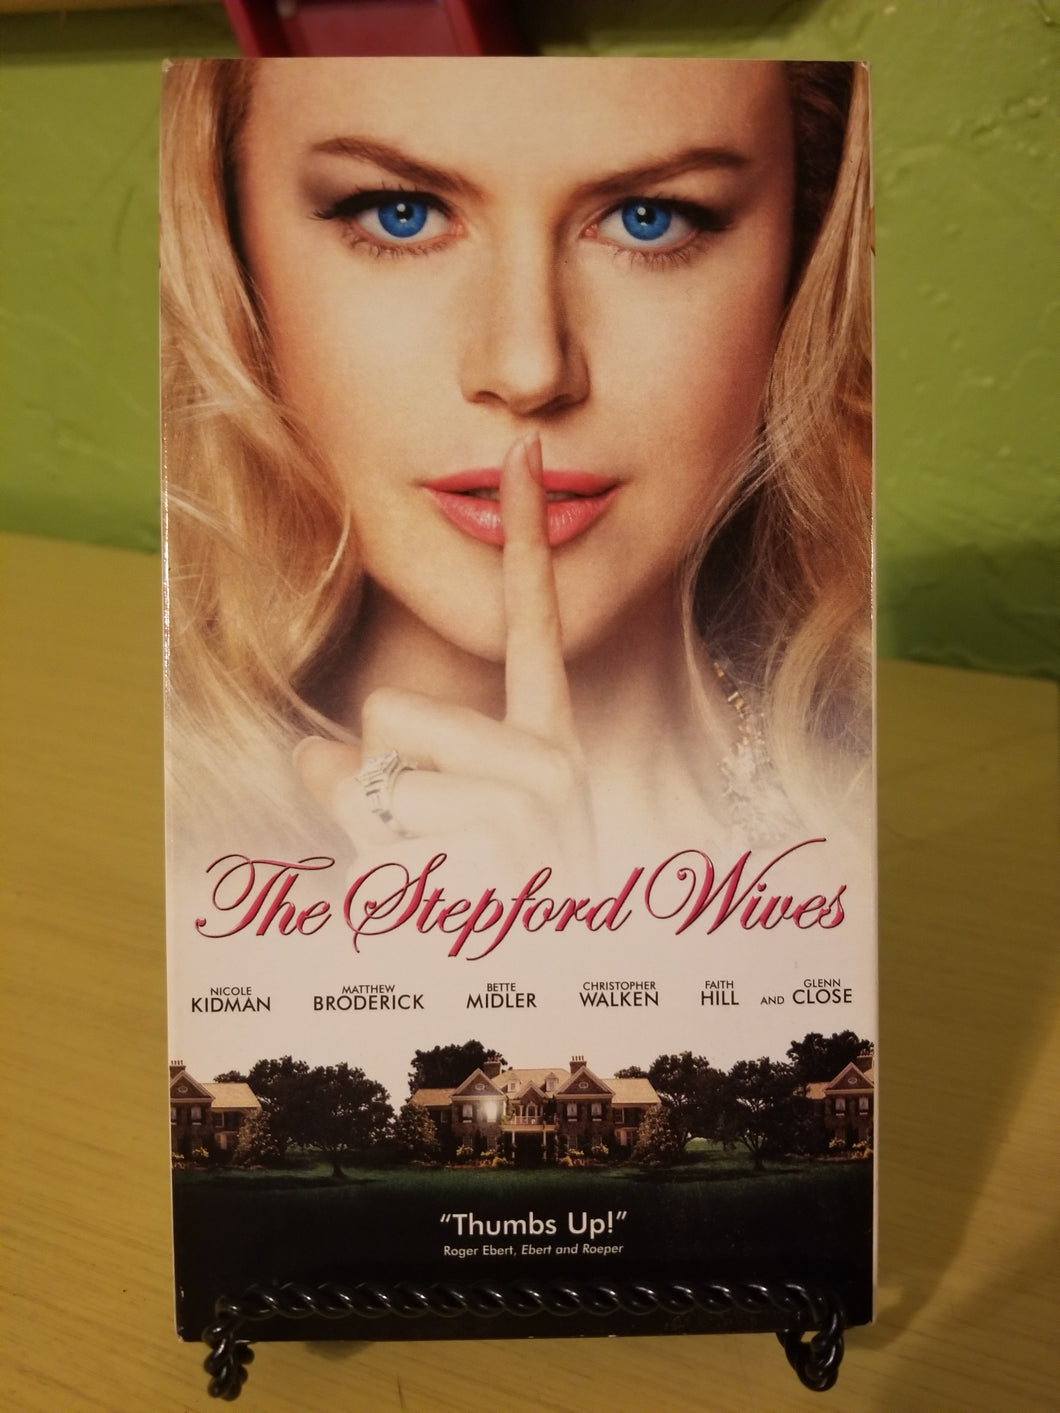 The Stepford Wives (2004) VHS